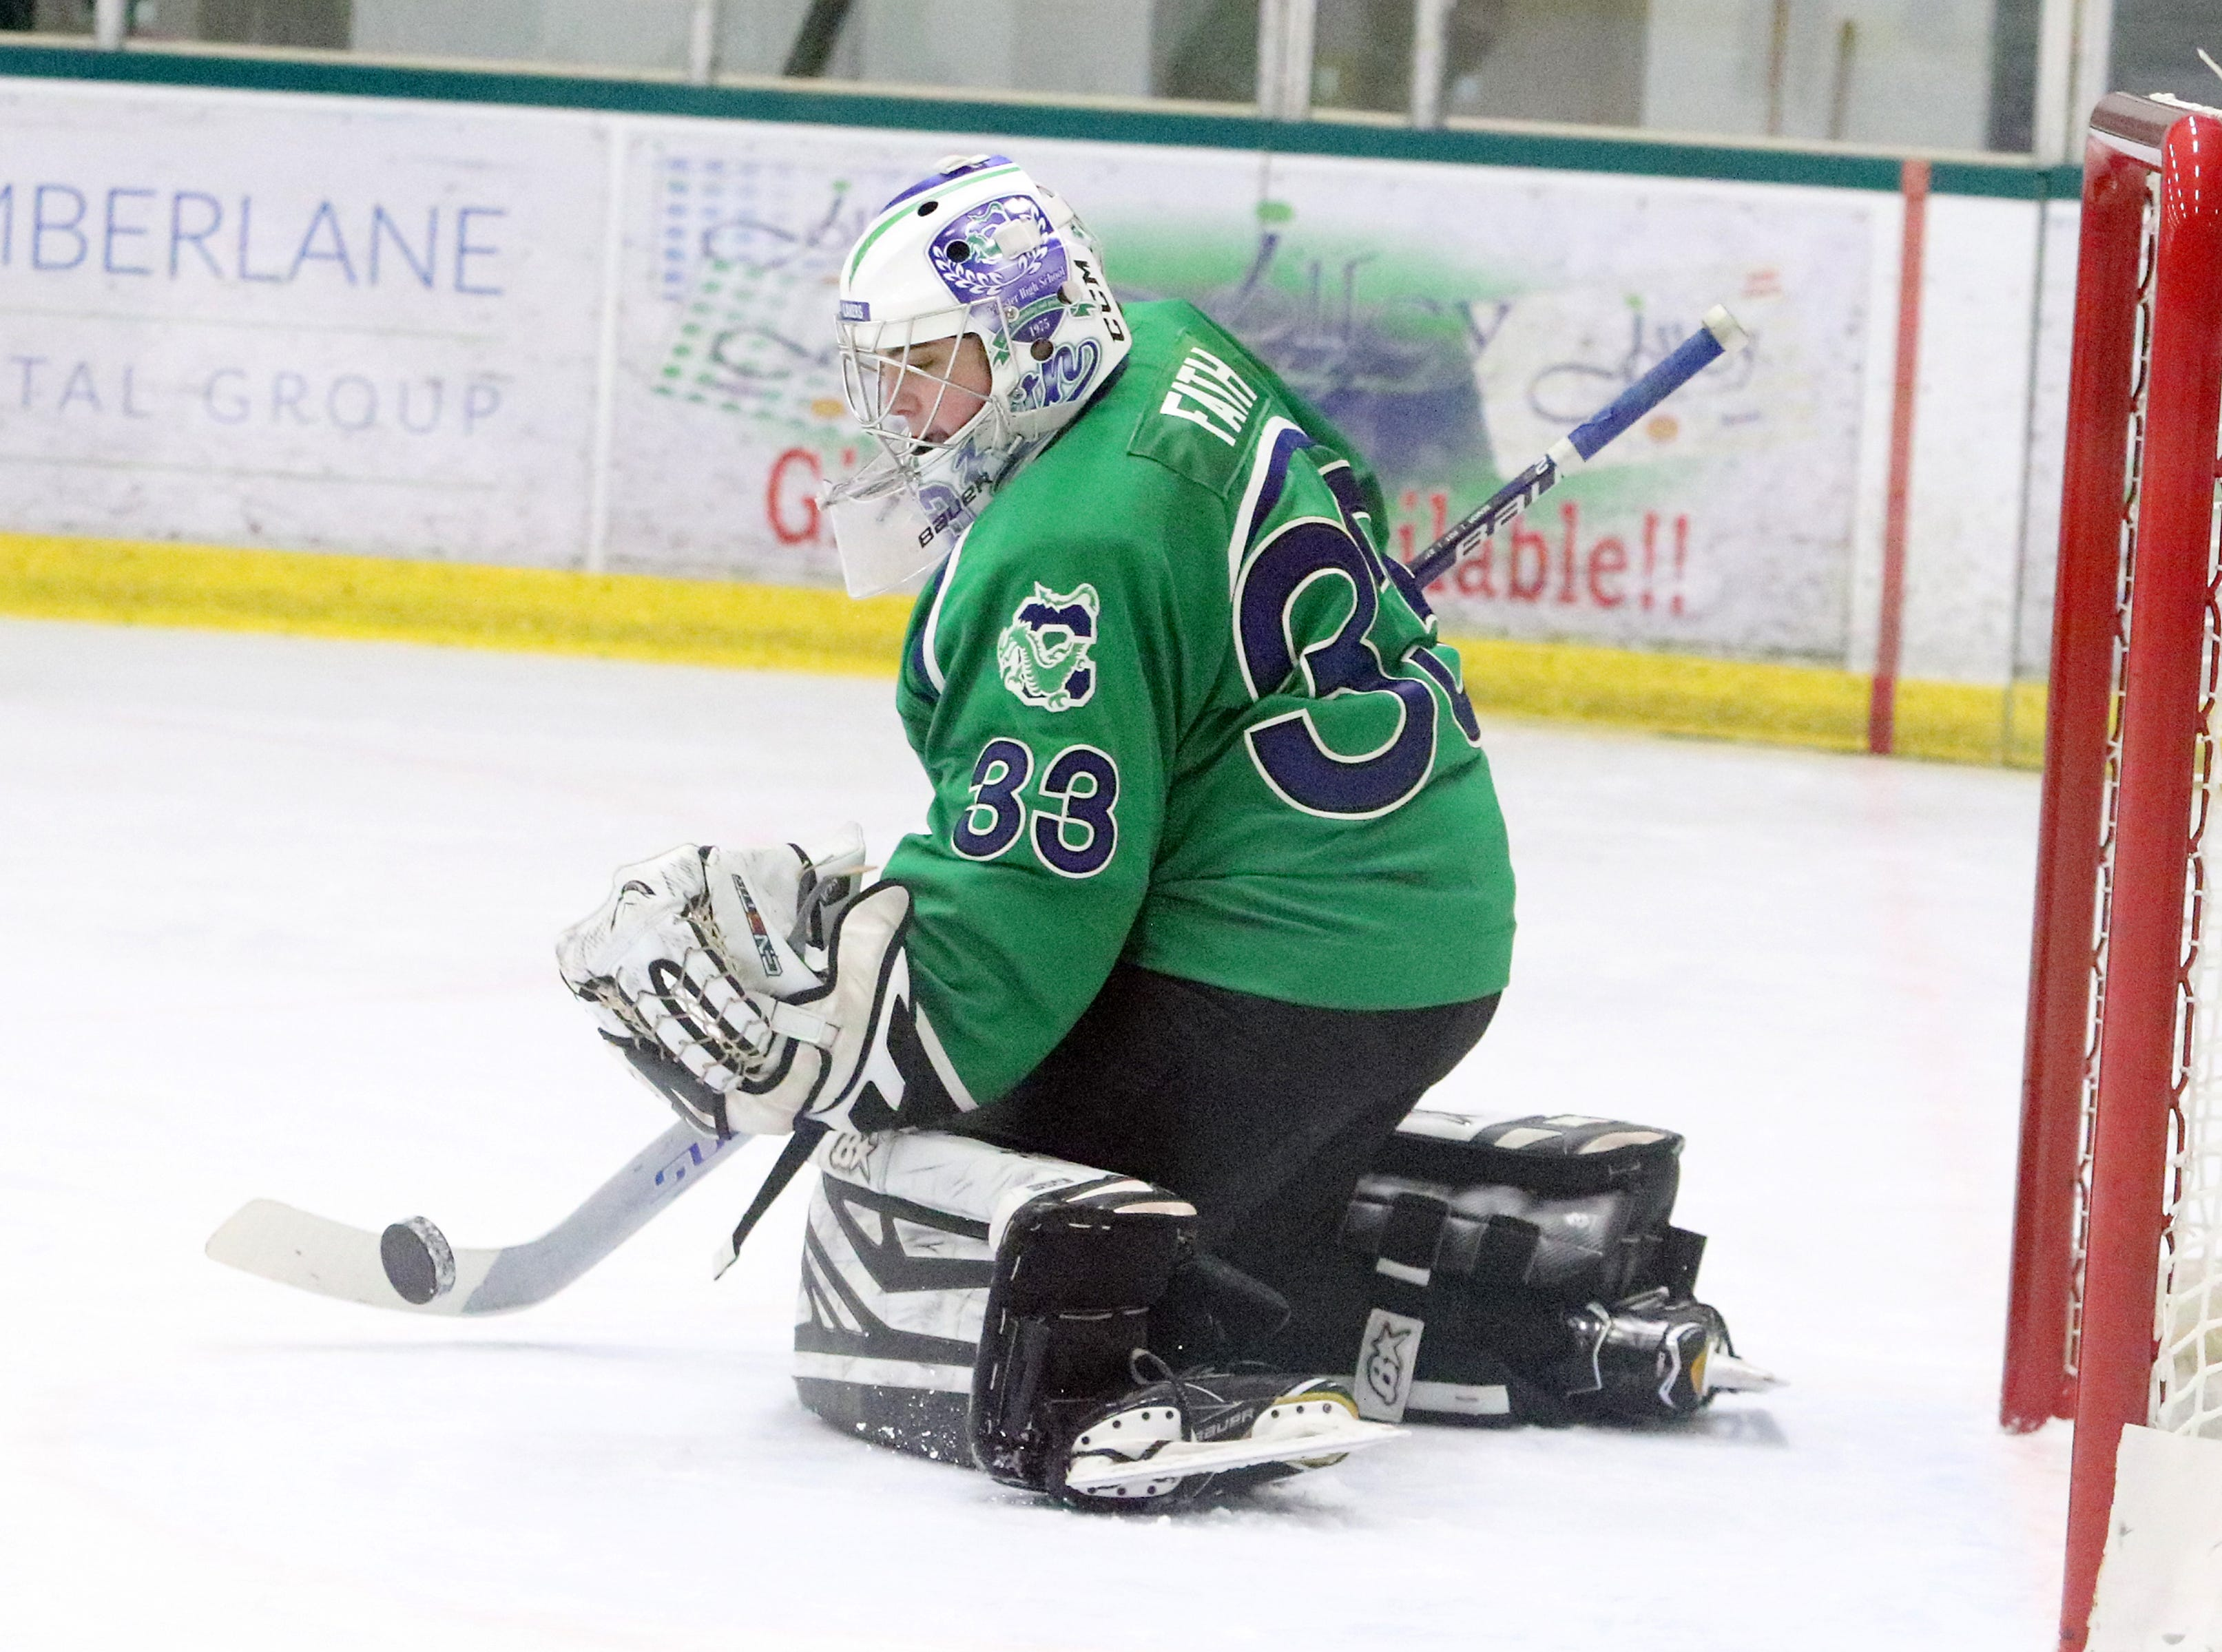 """Colchester senior Sam Fath makes a stick save during the Lakers 6-0 win over Burlington. Fath pitched a shutout during the 2nd annual """"BAHA Cup"""" game at Leddy Arena."""